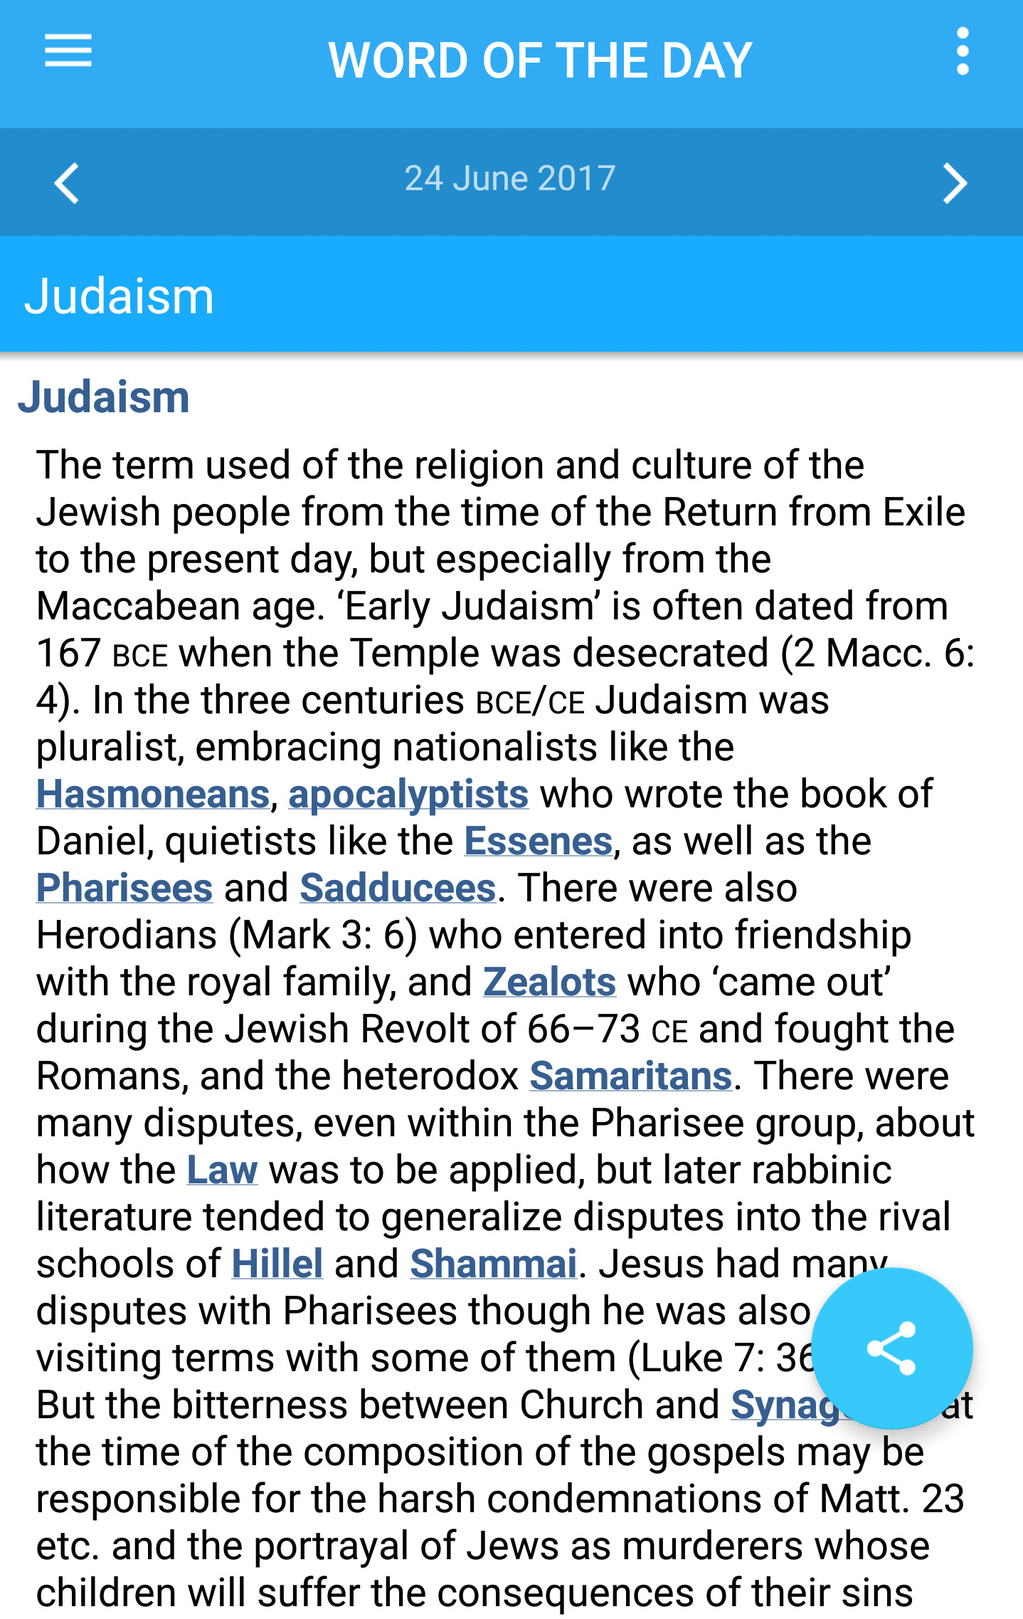 Oxford Dictionary of the Bible Screenshot